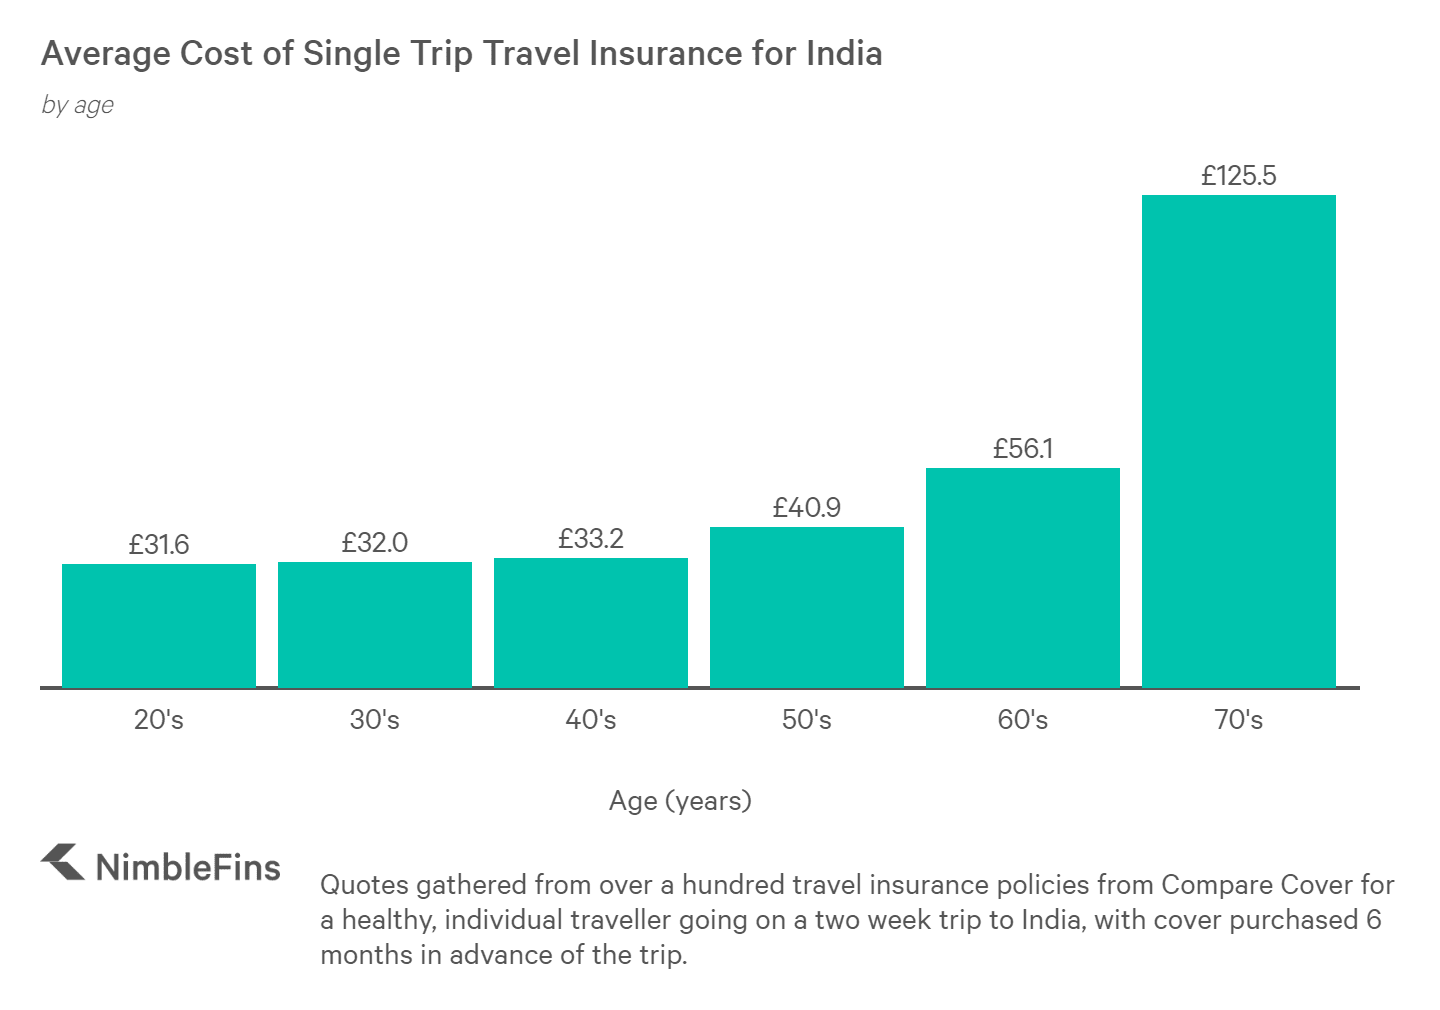 chart showing cost of travel insurance to India for those aged in 20s, 30s, 40s, 50s, 60s, and 70s